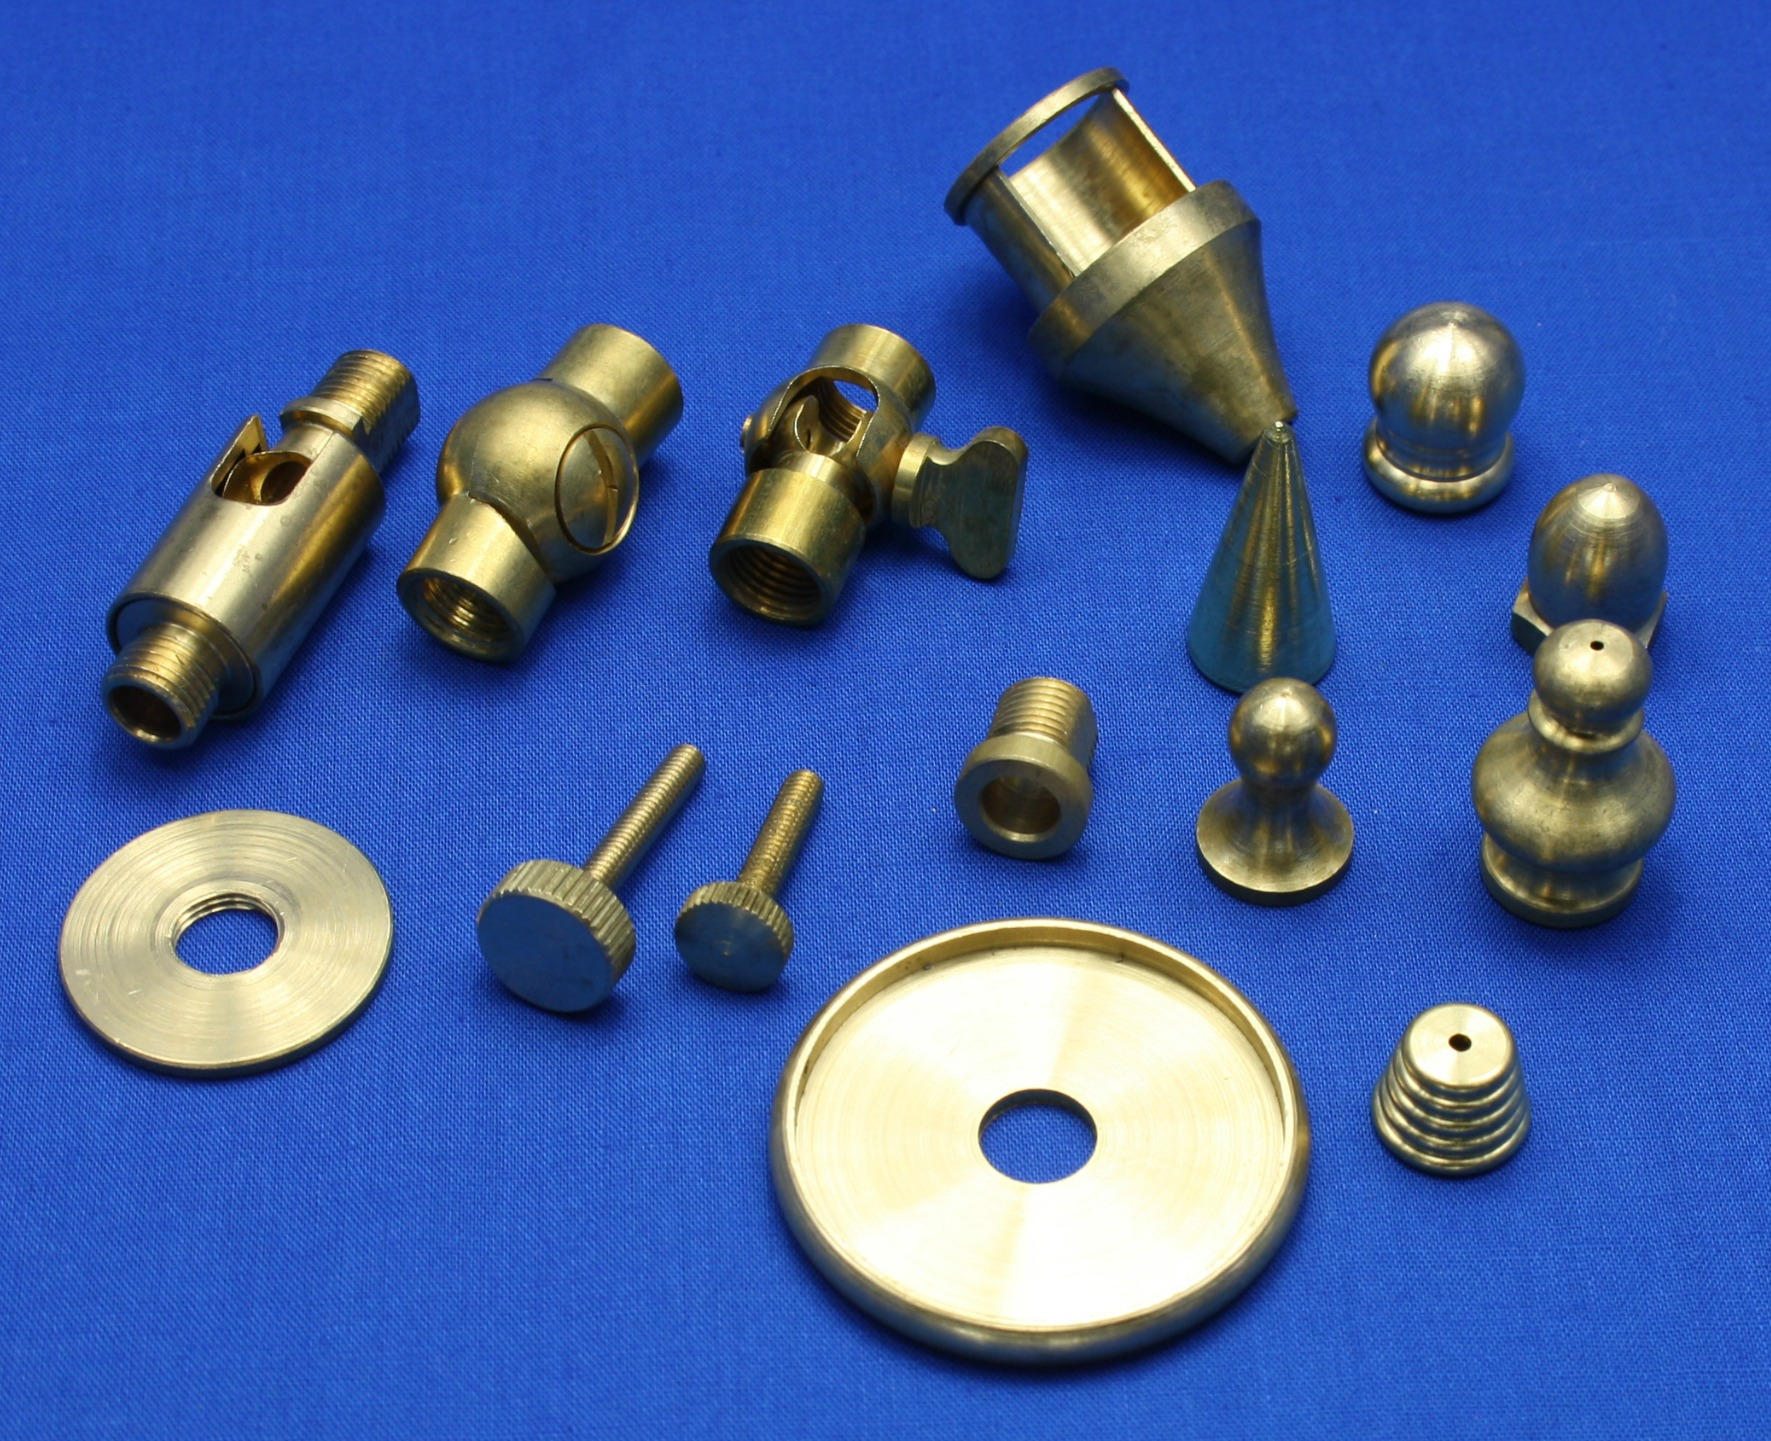 Accessori per lampadari decorare la tua casa for Accessori lampadari